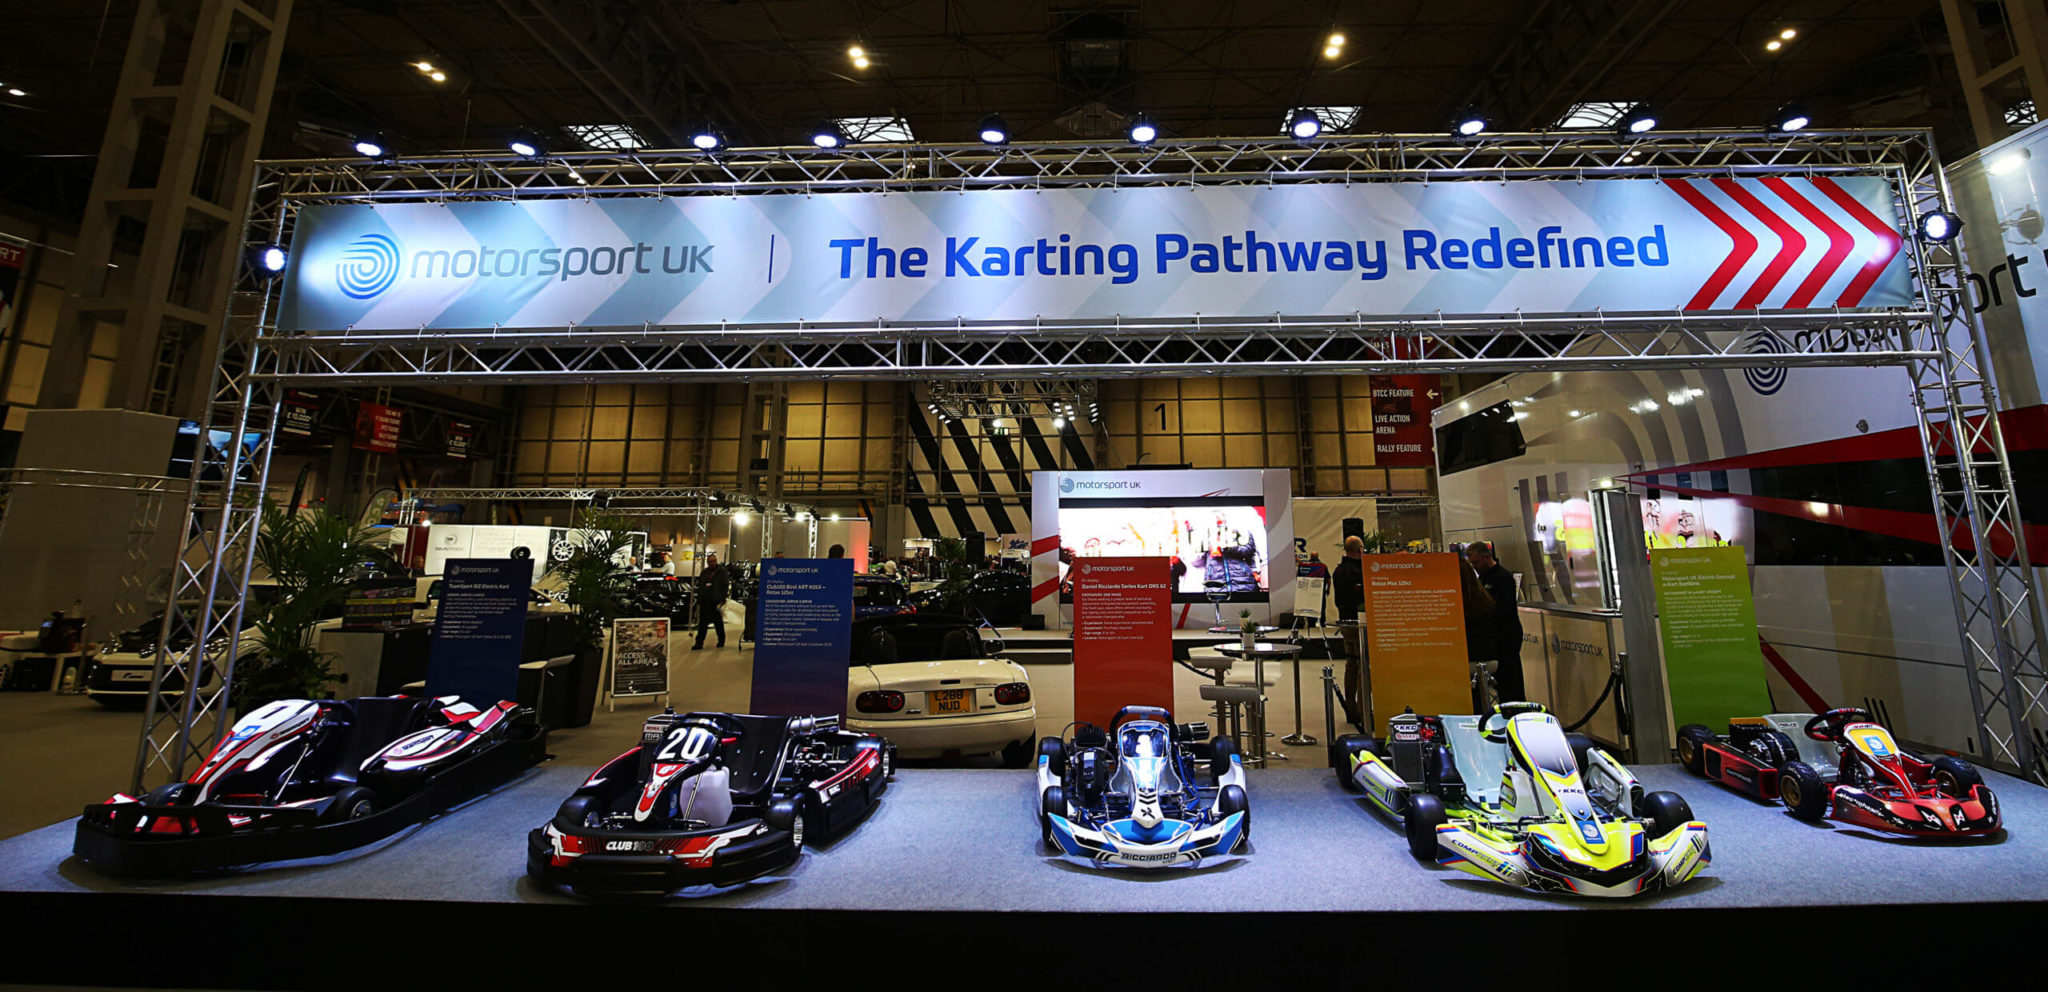 Karting-Pathway-1-scaled-e1612198939197-2048x992.jpg